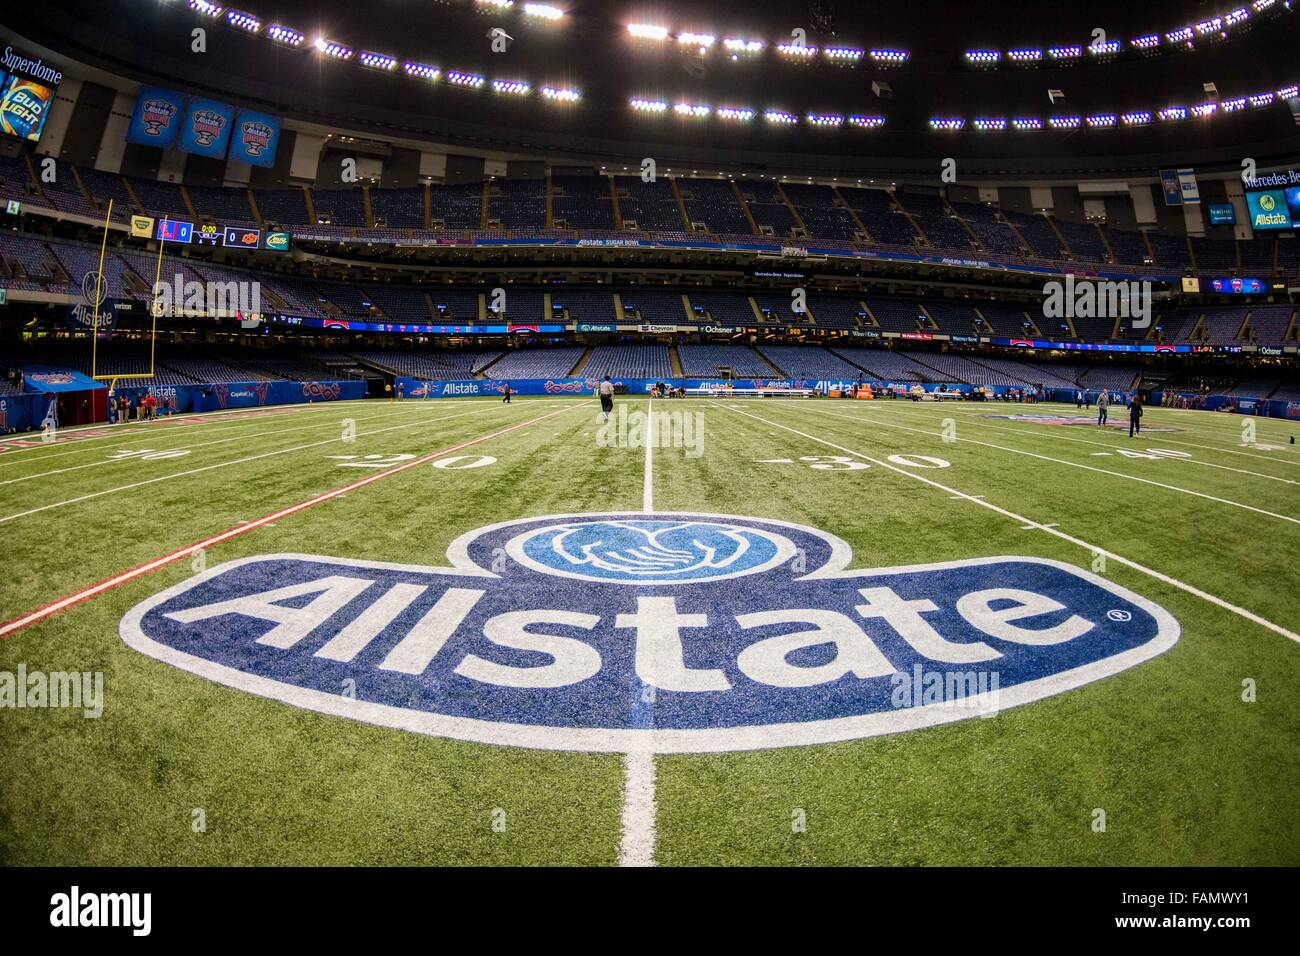 Allstate My Account >> The Allstate logo during the Allstate Sugar Bowl College ...